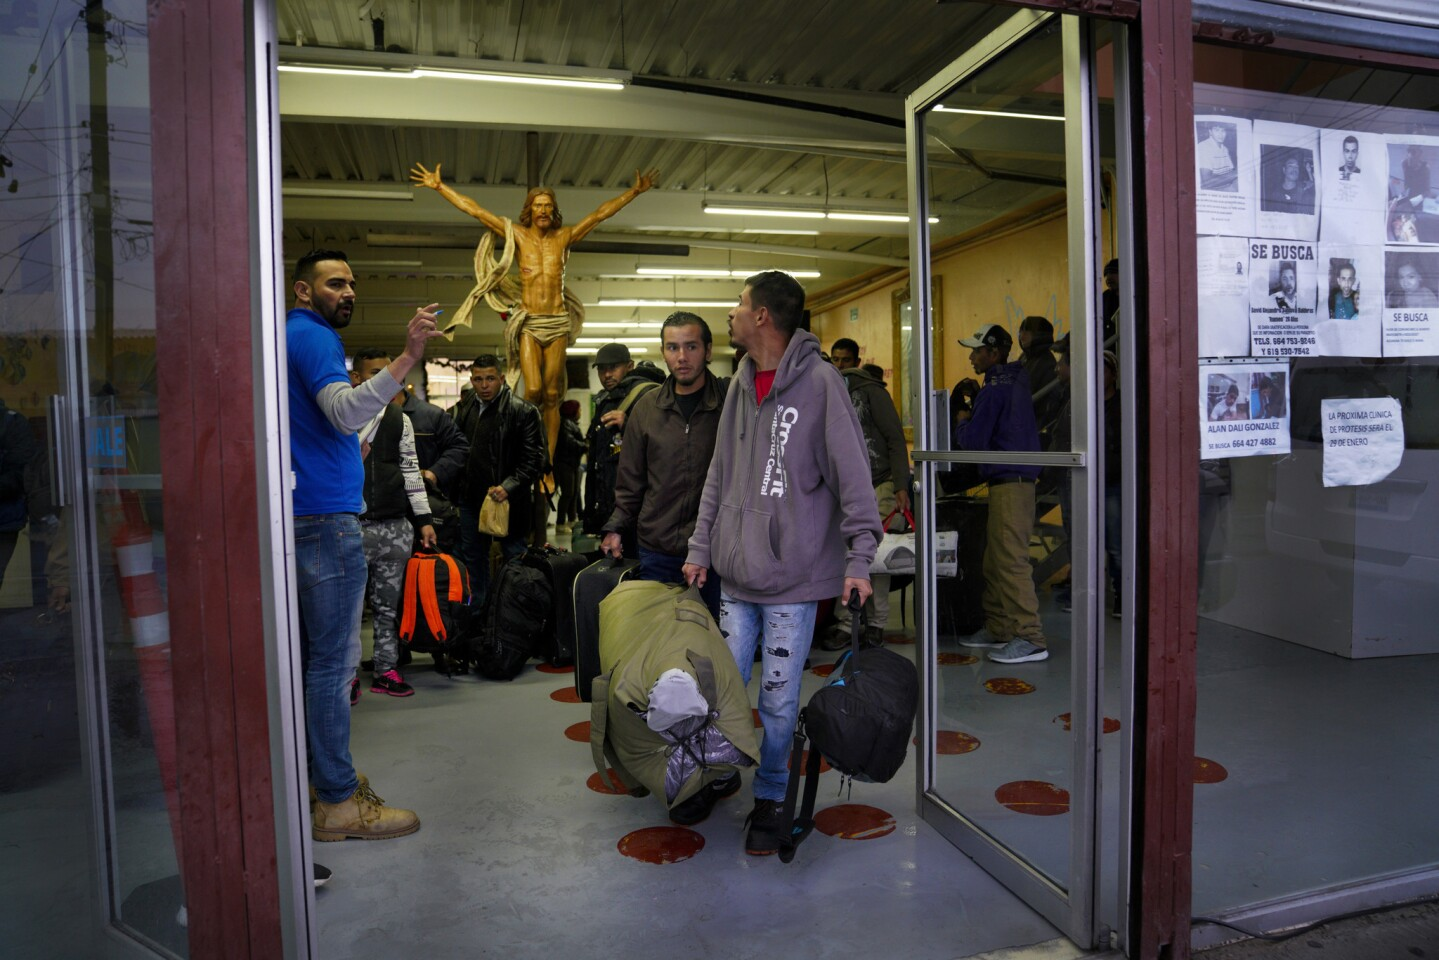 Late afternoon on Tuesday, an official from the International Organization for Migration gives transportation instructions to the group of 32-men and 3 women at the Desayunador Salesiano Padre Chava shelter in Tijuana that have volunteered to return back to their home countries.